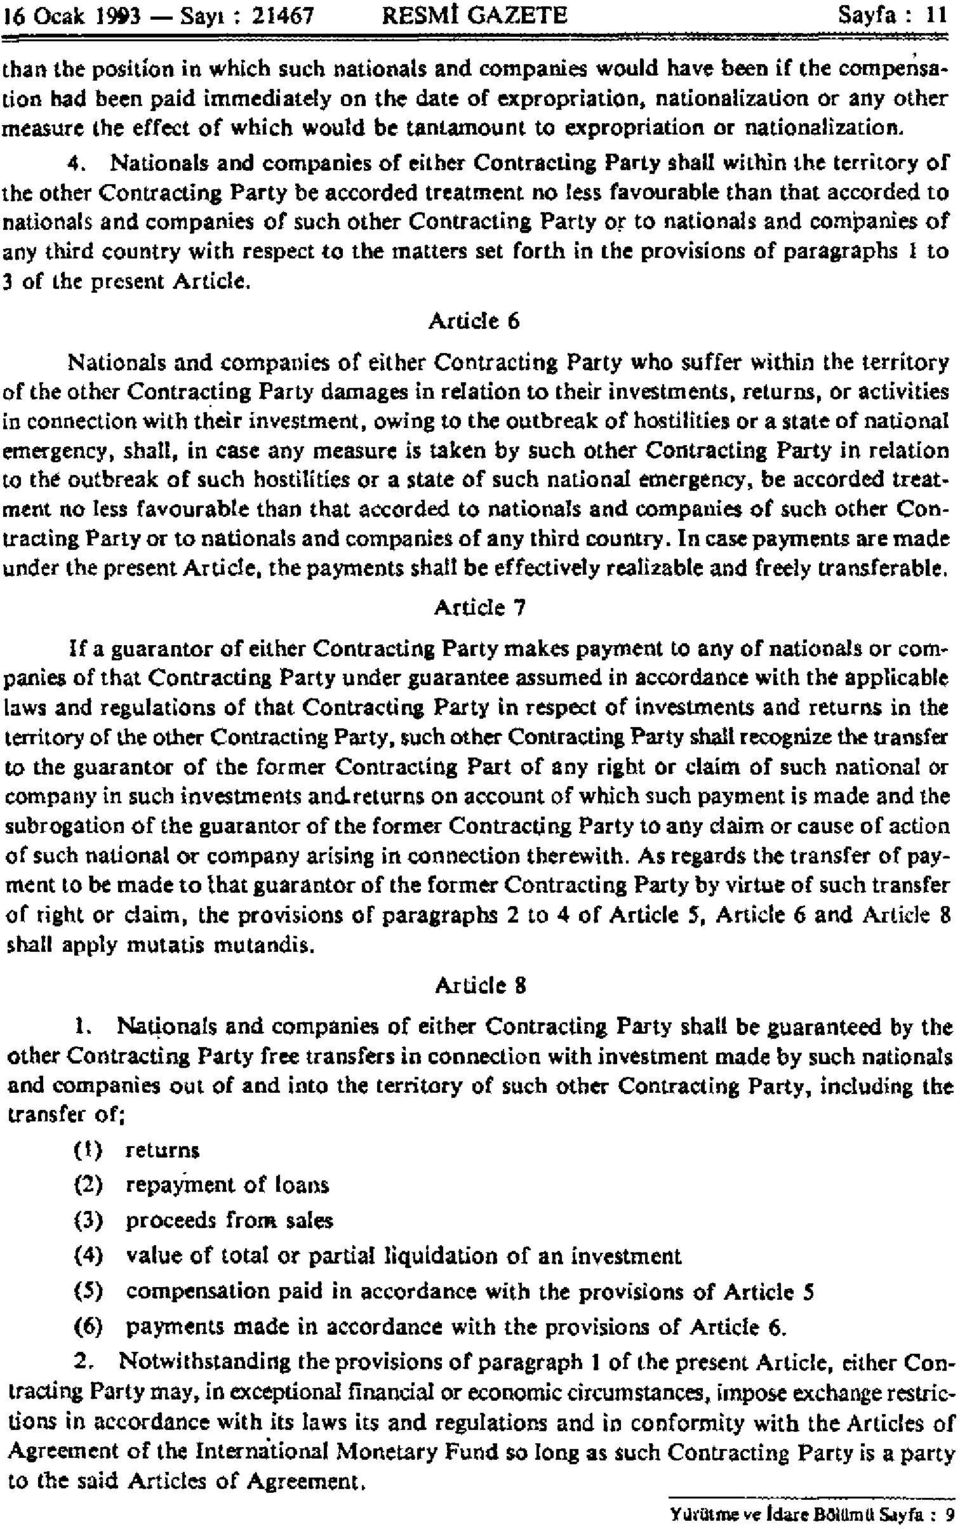 Nationals and companies of either Contracting Party shall within the territory of the other Contracting Party be accorded treatment no less favourable than that accorded to nationals and companies of